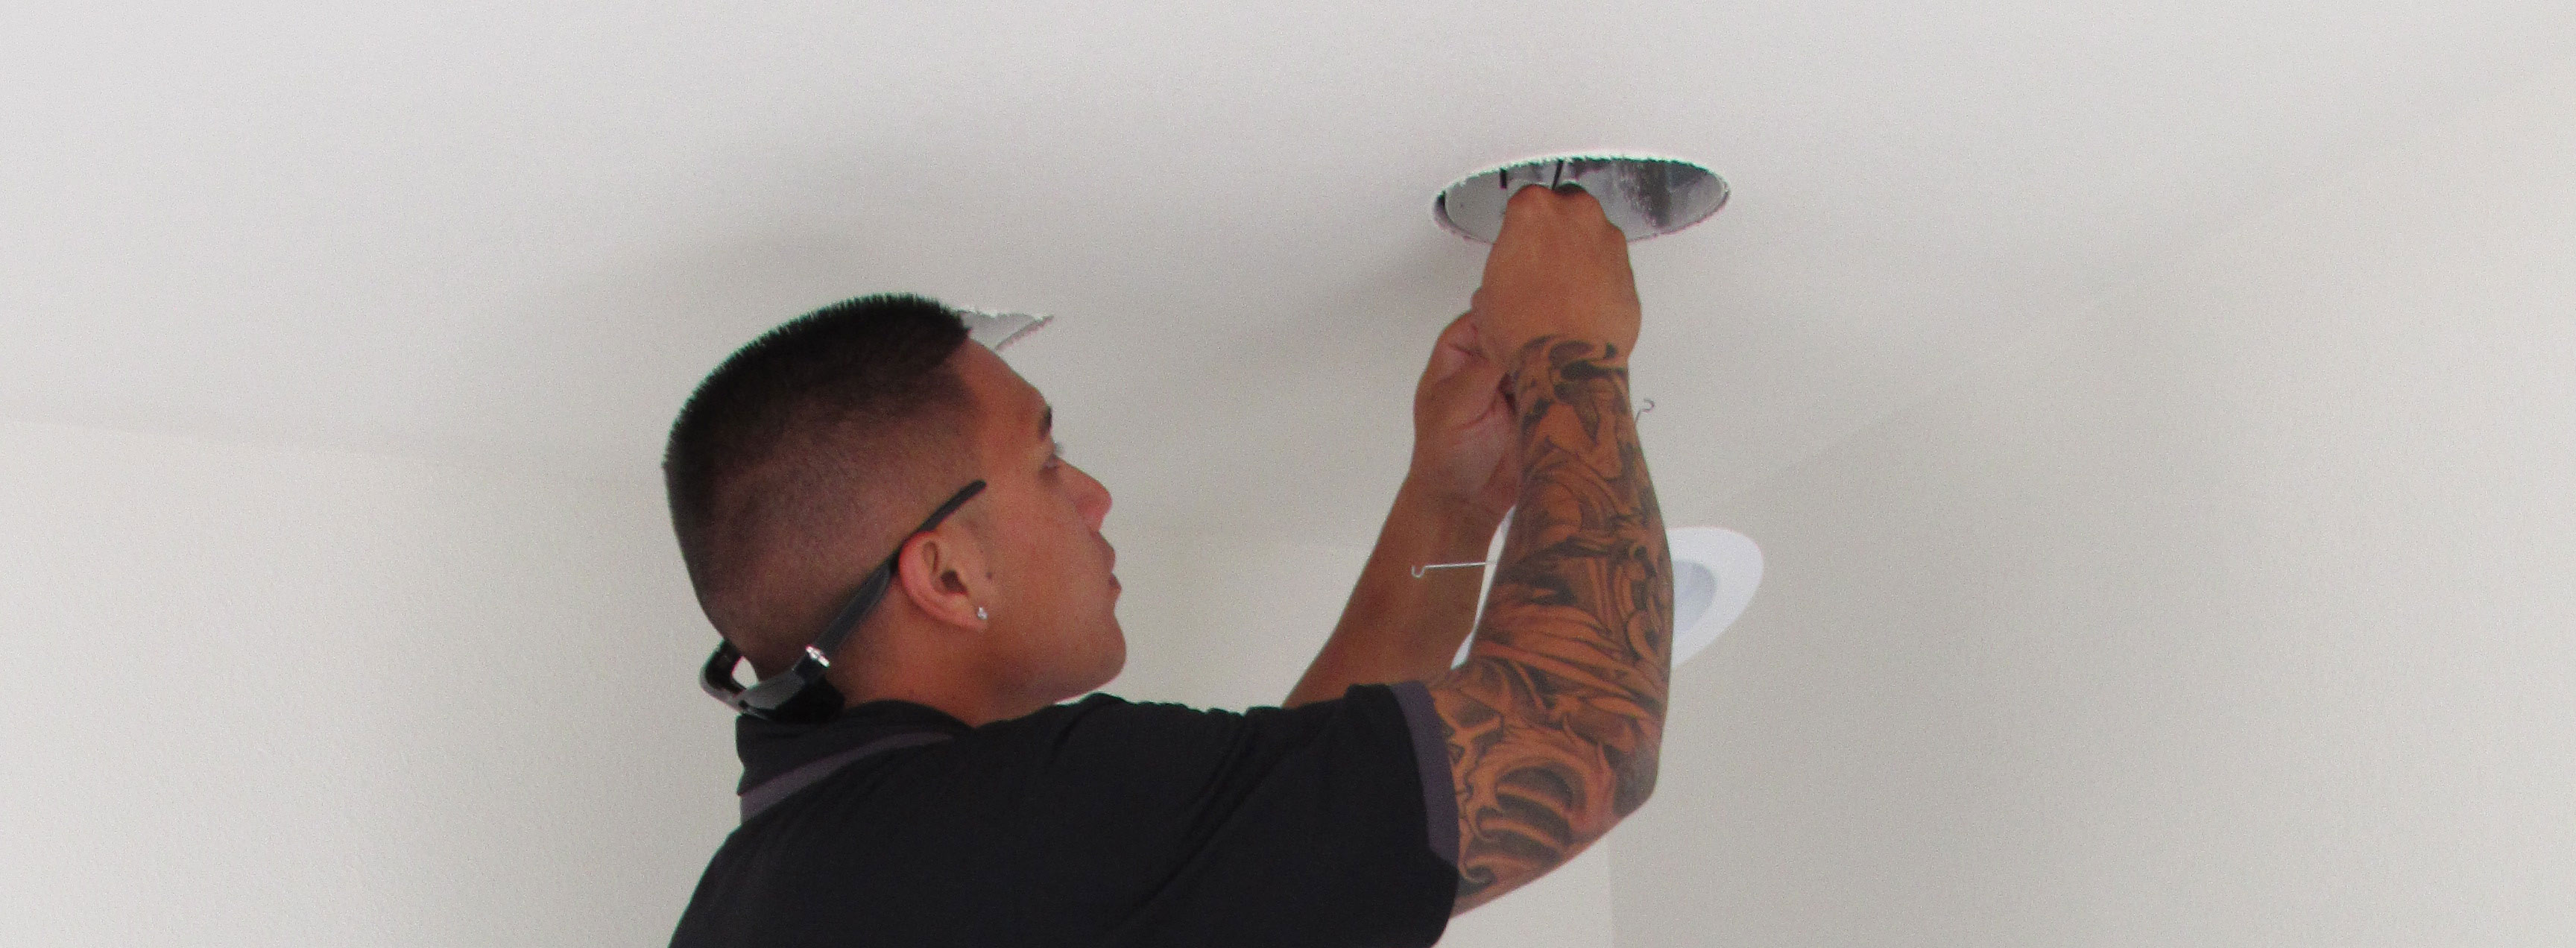 Residential lighting and fixture installation services in Hilo, Hawaii